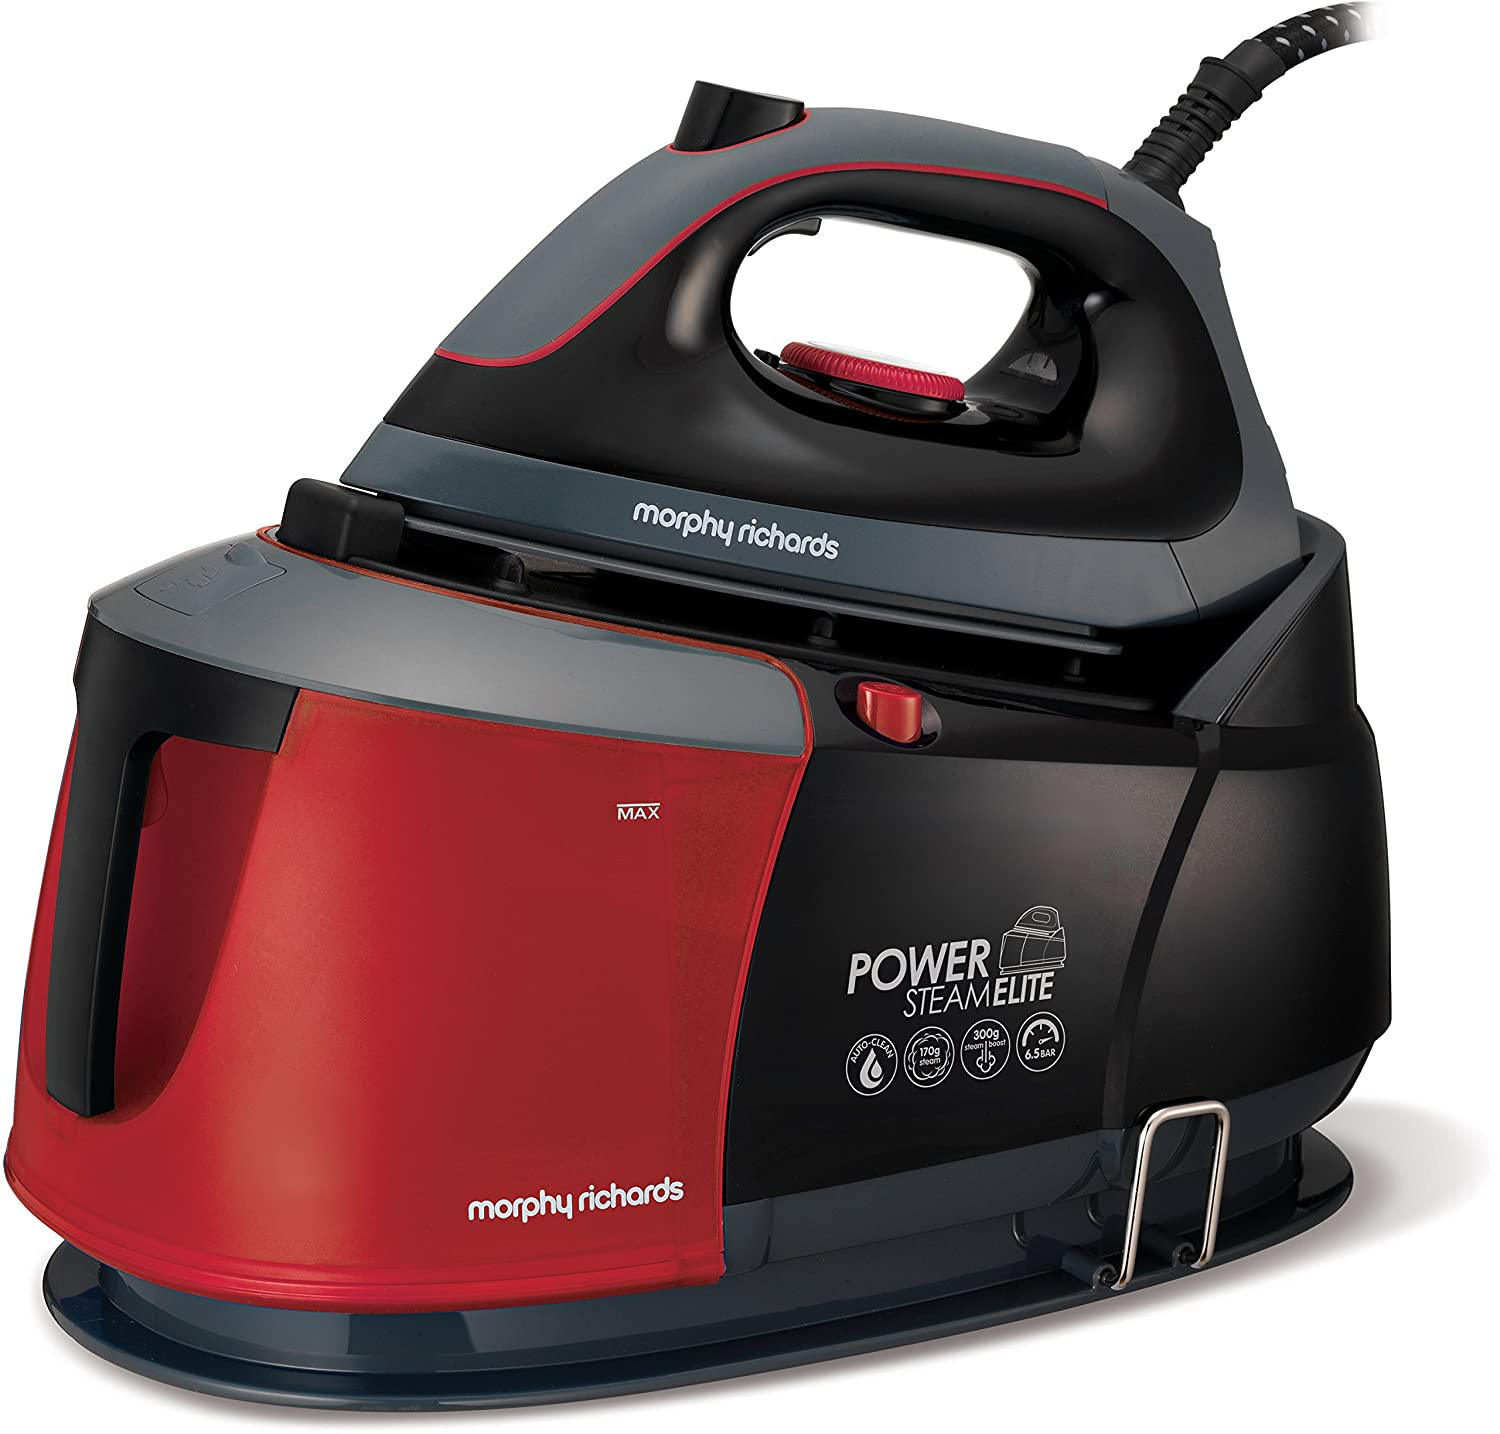 Morphy Richards Power Steam Elite Steam Generator Iron with